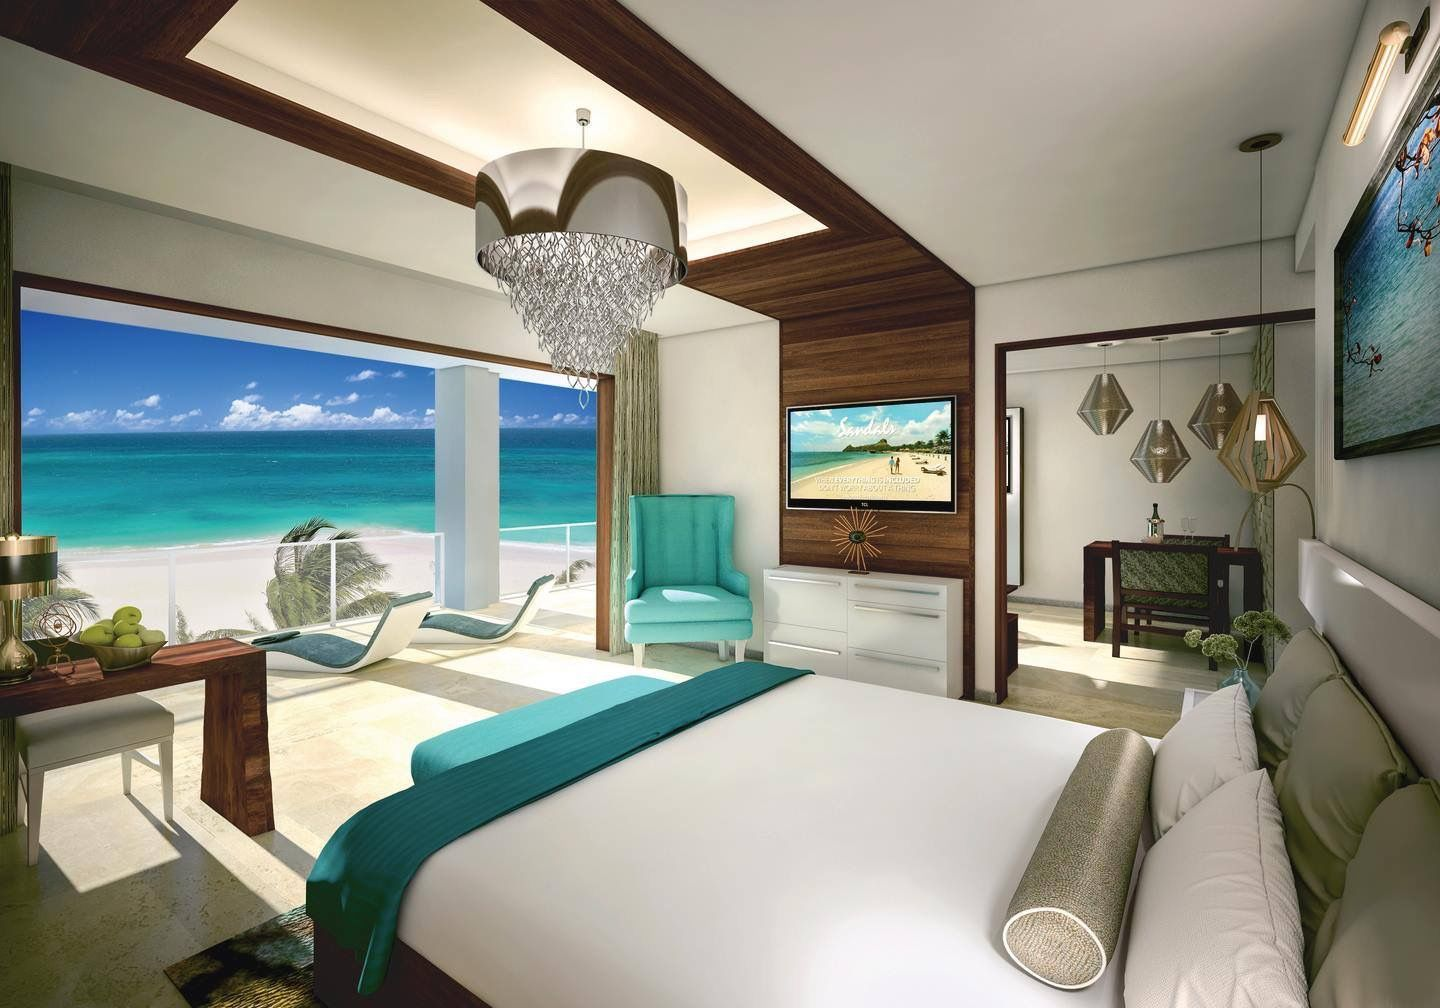 A Sandals 5-Star All Inclusive Hotel Beach Resort in